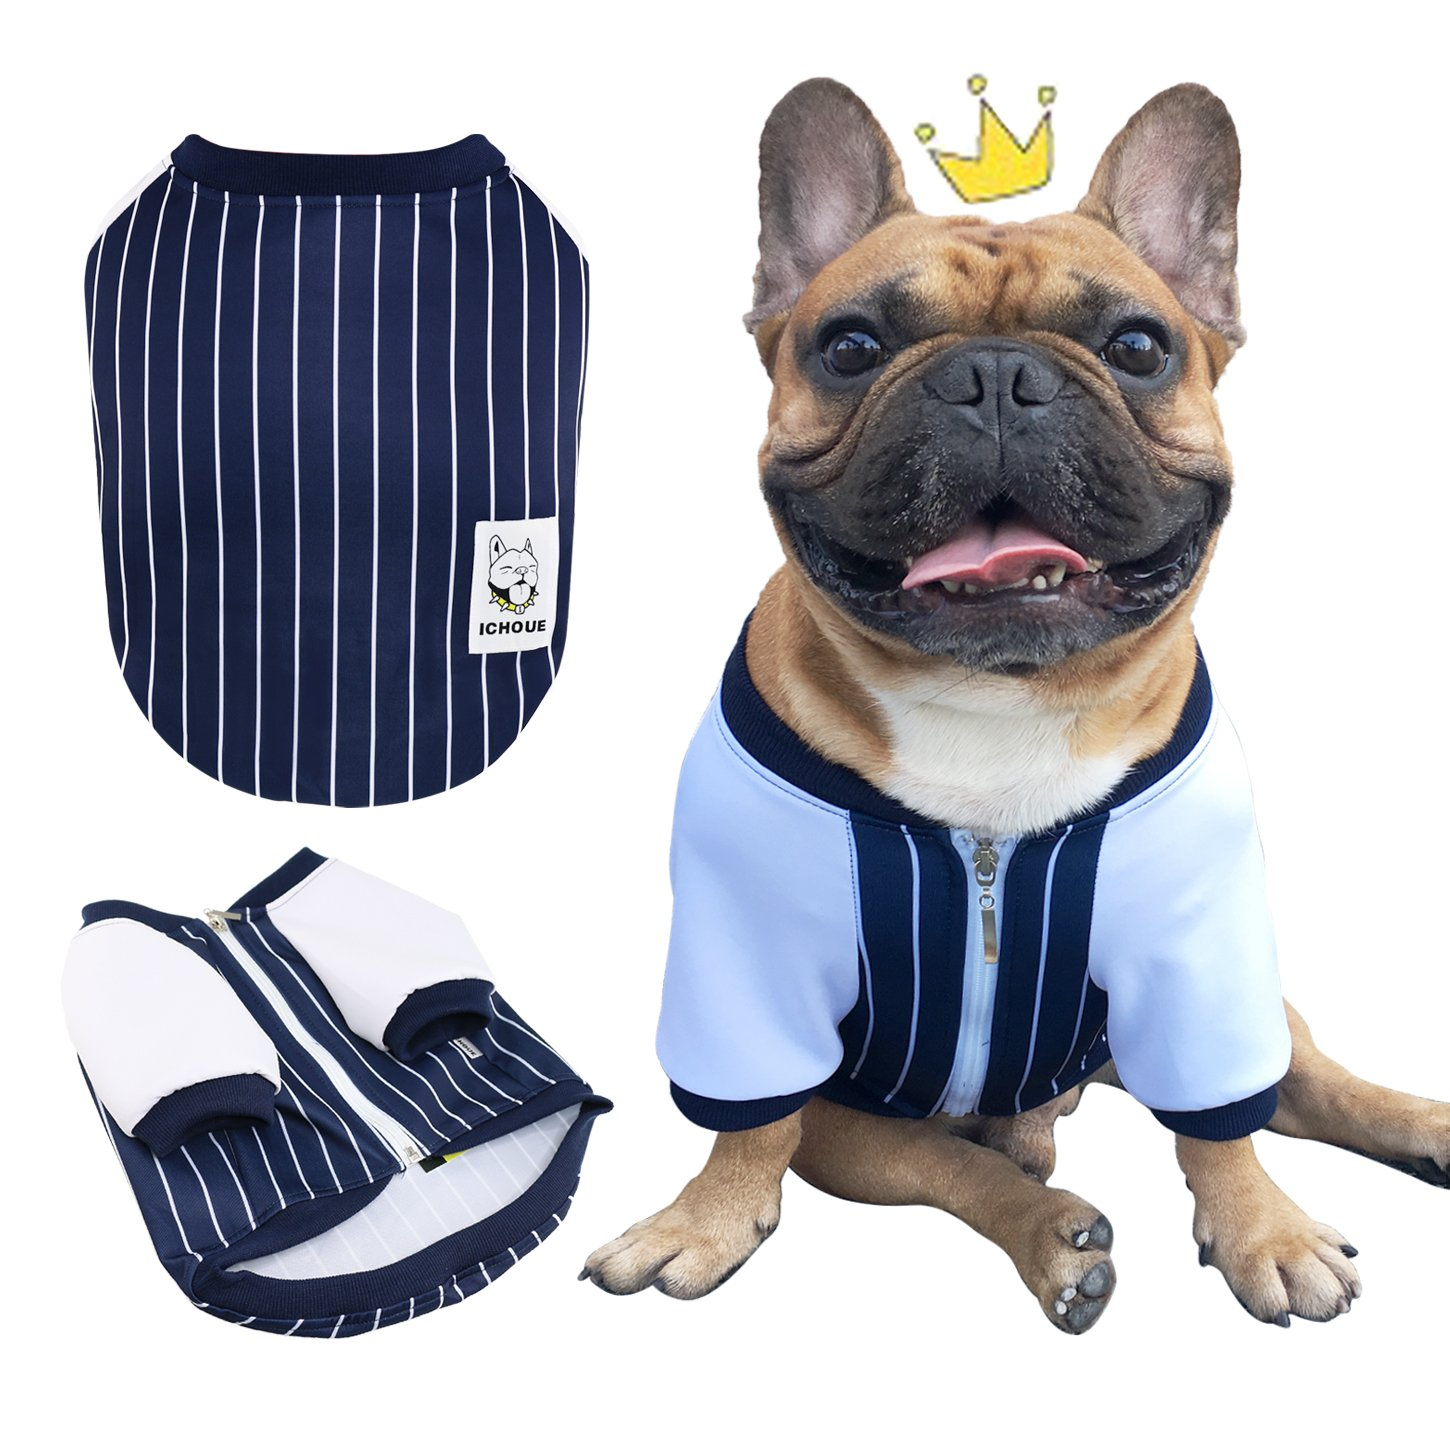 iChoue Pets Dog Clothes Jacket French Bulldog Stripe Shirts Cotton Puppy Coats Pug Corgi English Bulldog American Bully Pitbull Clothing - Black/Size L